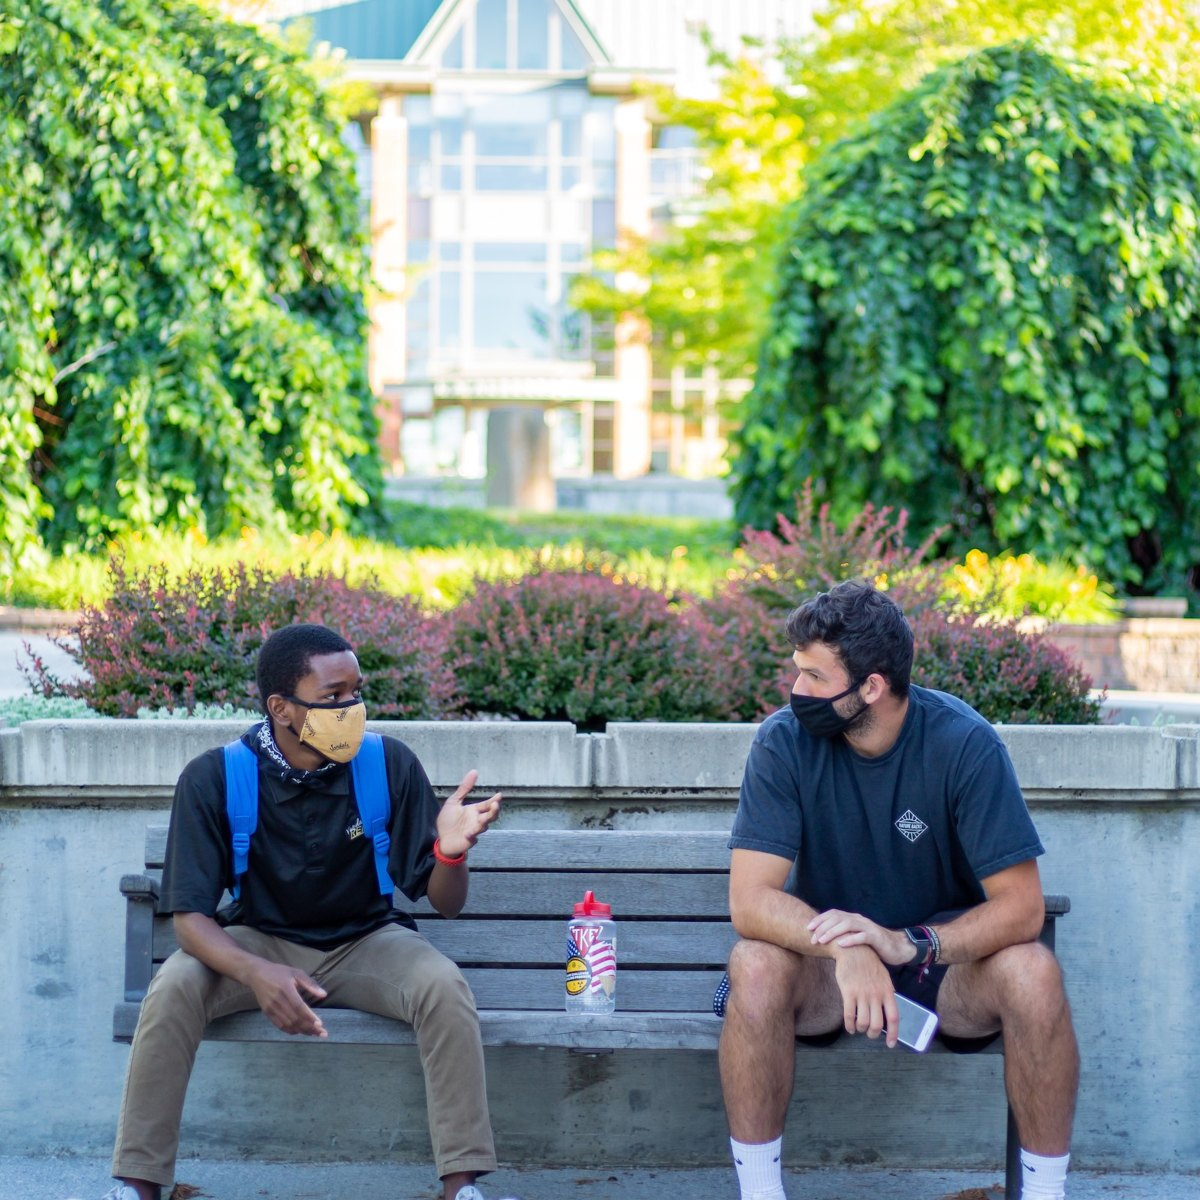 Two students wearing Vandal-themed face coverings enjoy a conversation on a bench outside the J.A. Albertson building.